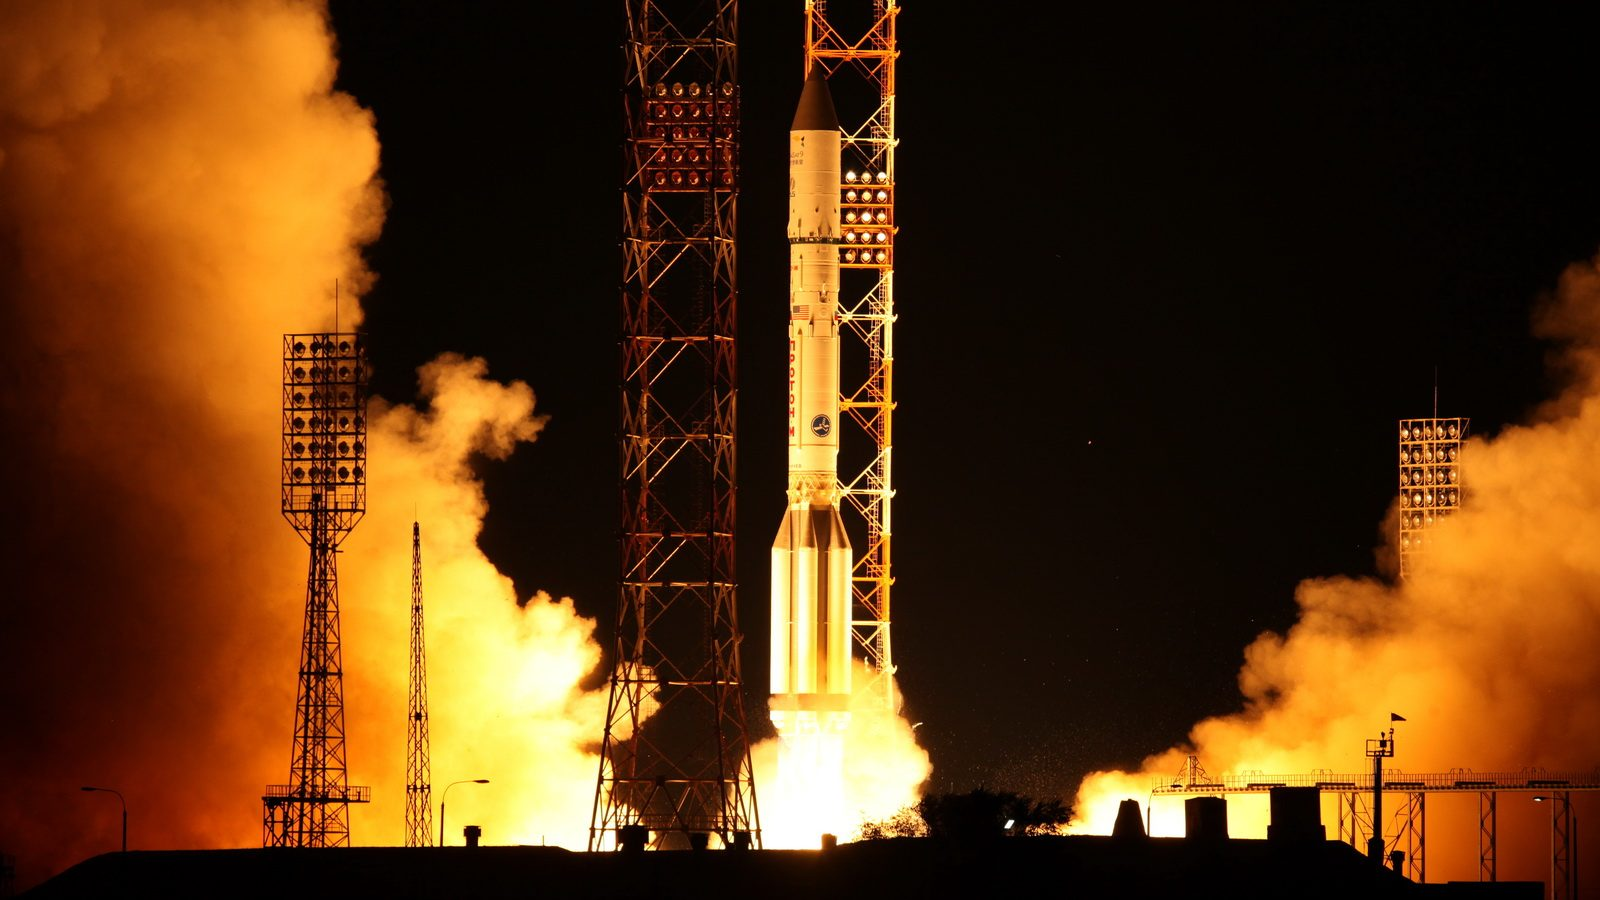 Proton-M / Briz-M / AsiaSat-9 launch, 2017-09-28